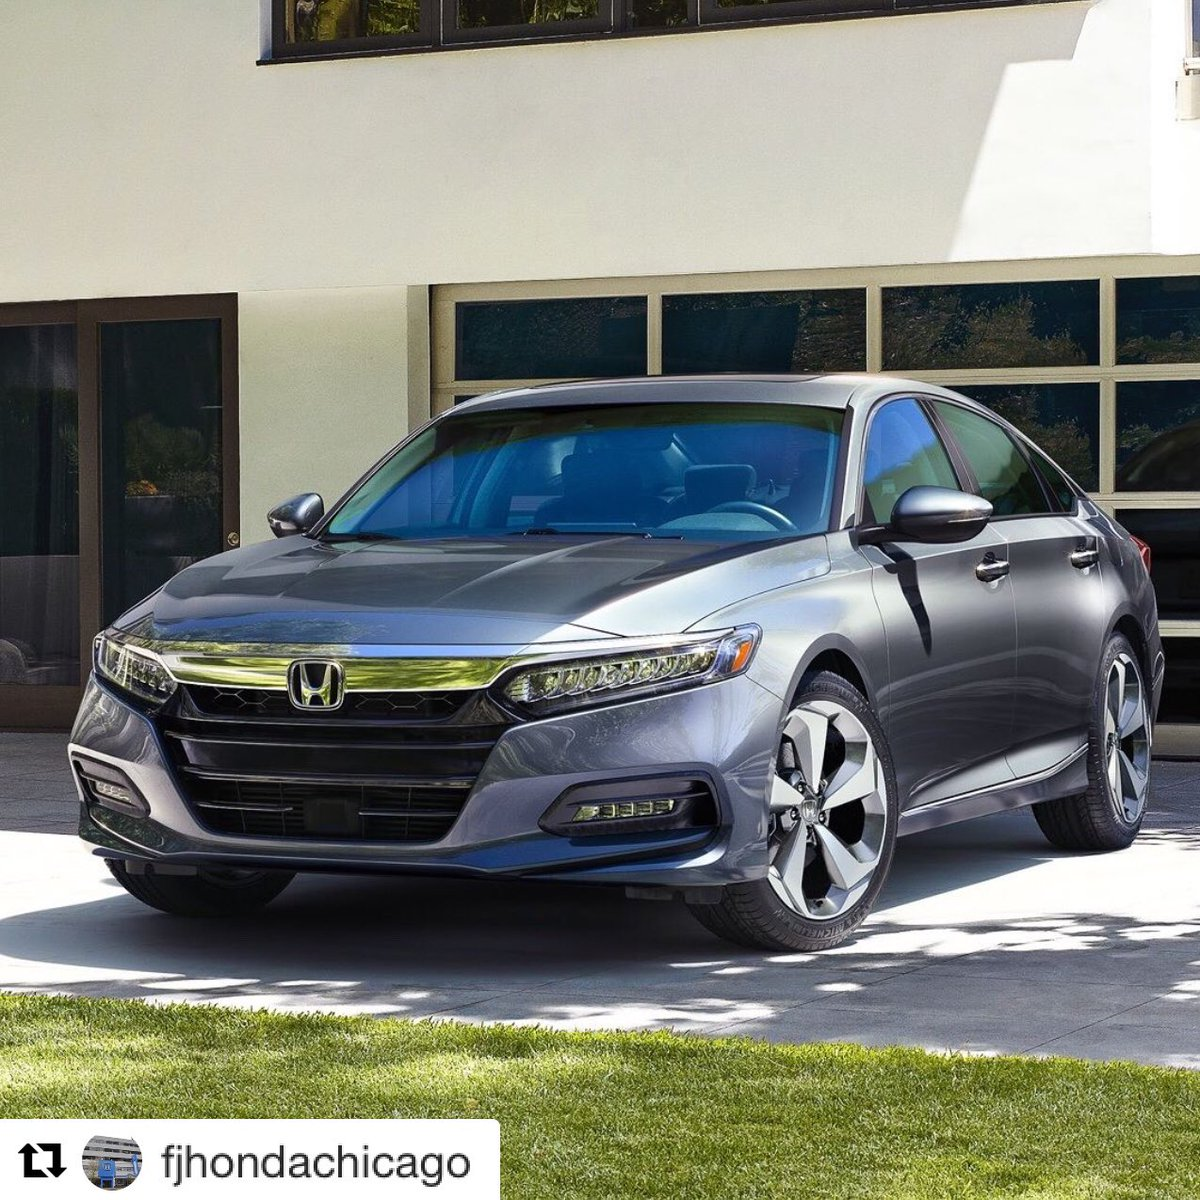 The ALL-NEW #2018 #Honda #Accord has Just Arrived! ・・#Repost @fjhondachicago #findenauto<br>http://pic.twitter.com/PZRYUgYIoI